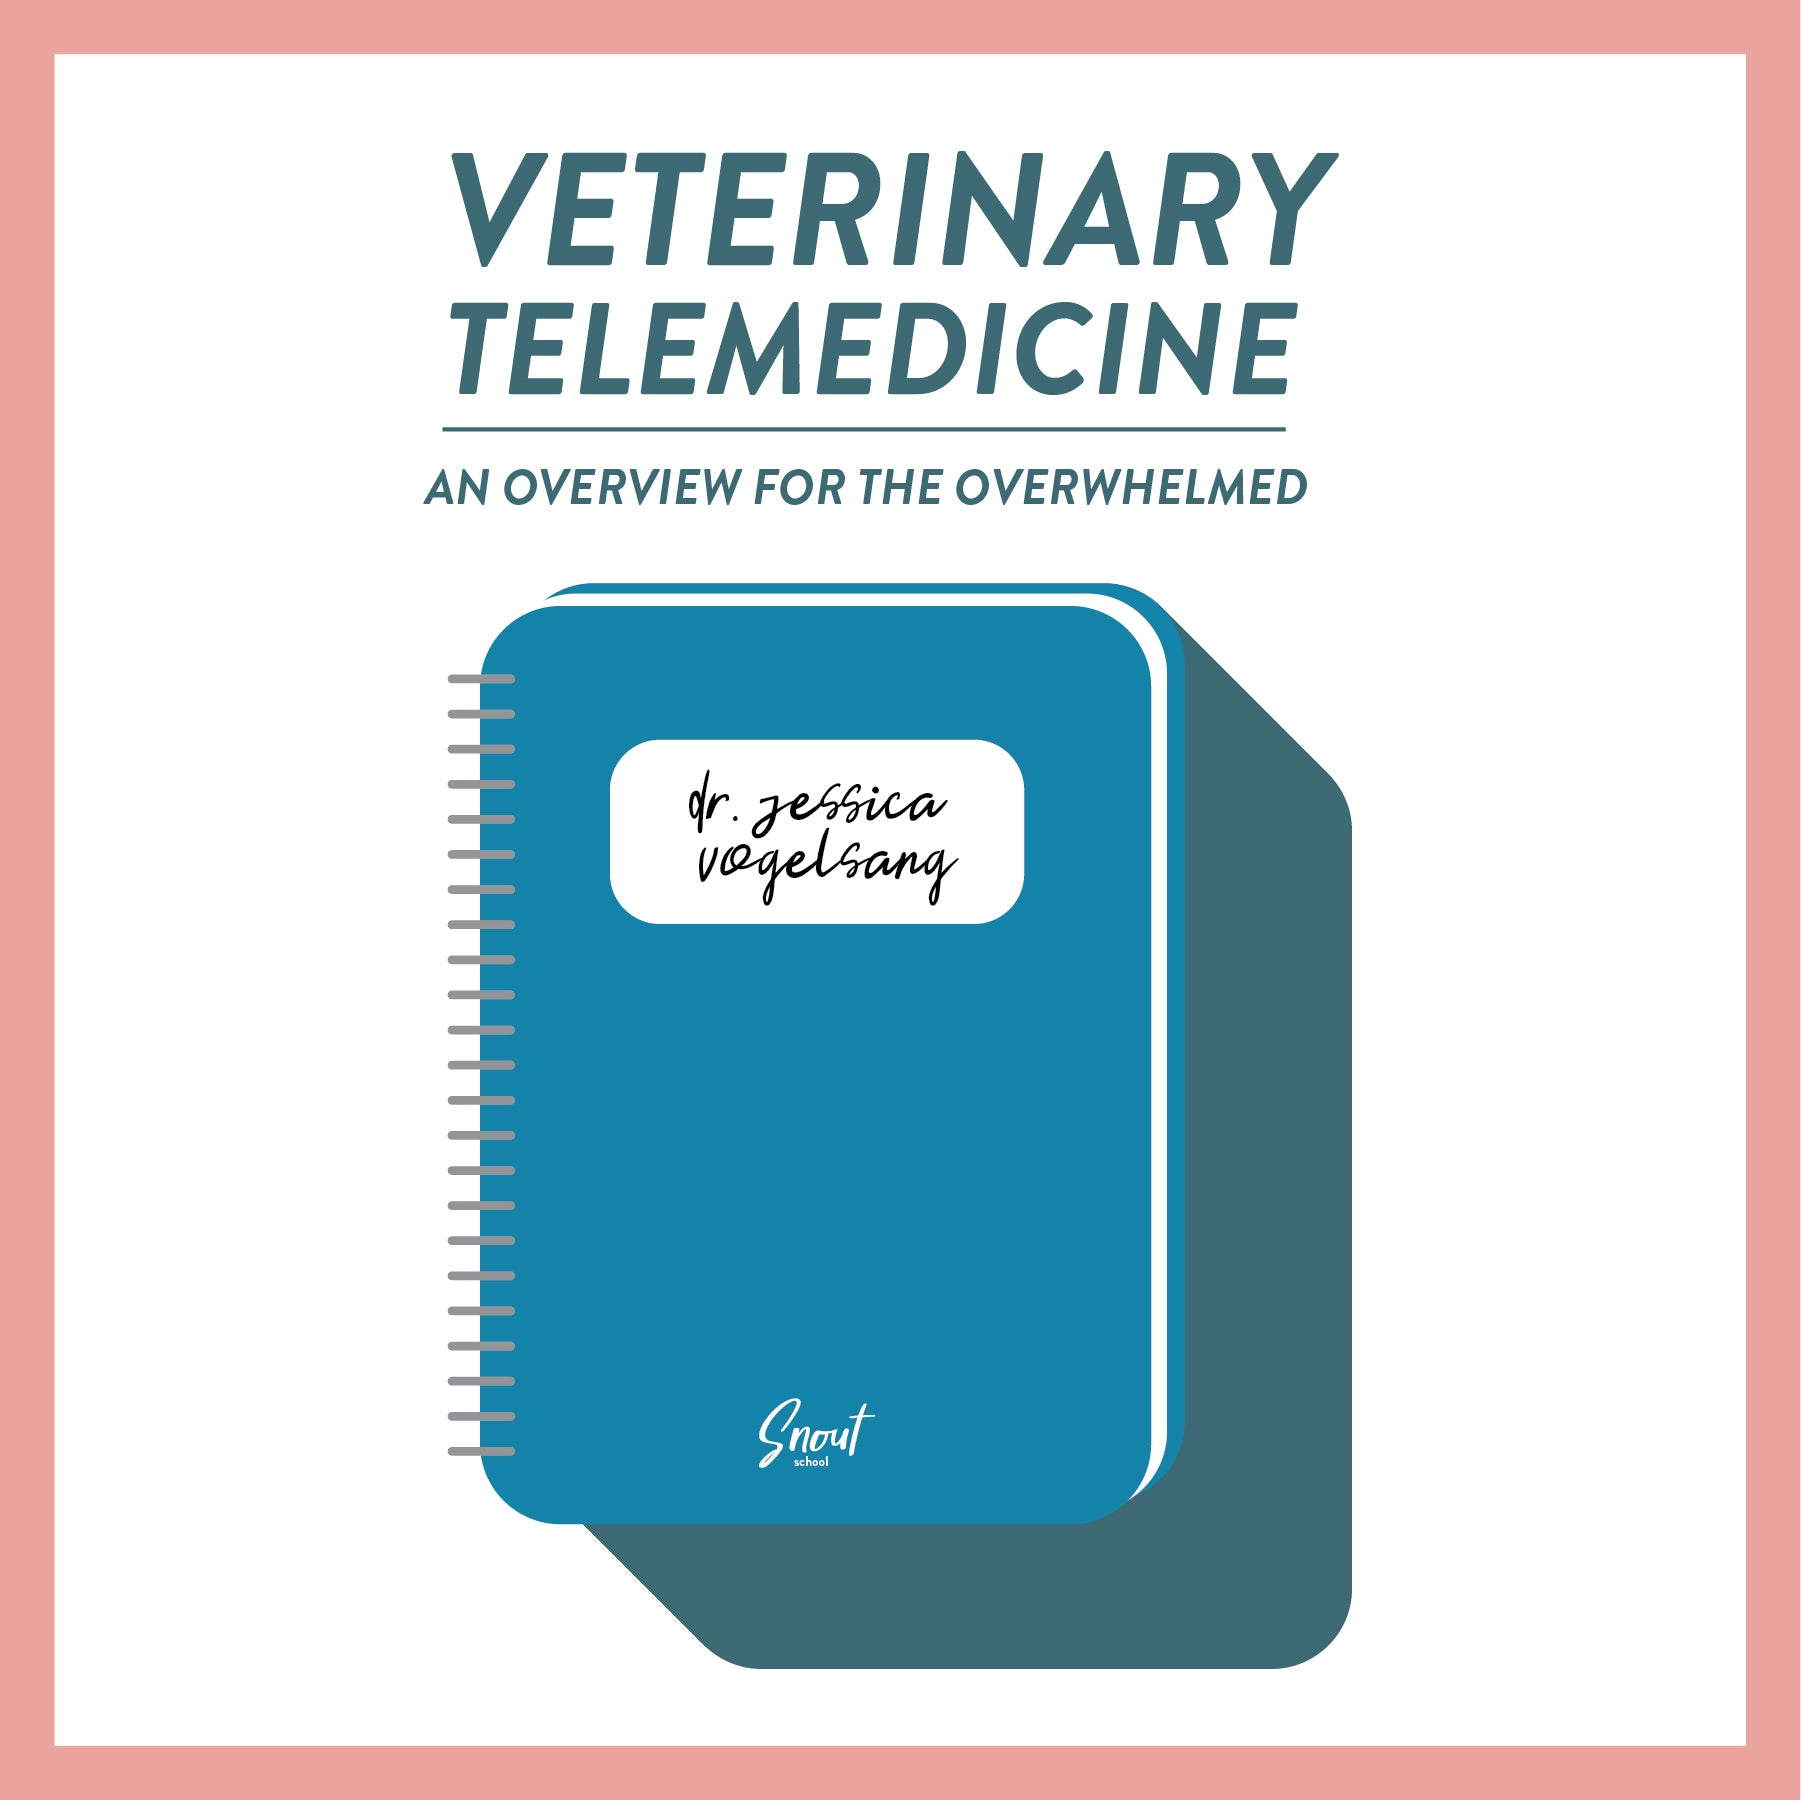 Veterinary Telemedicine: An Overview for the Overwhelmed